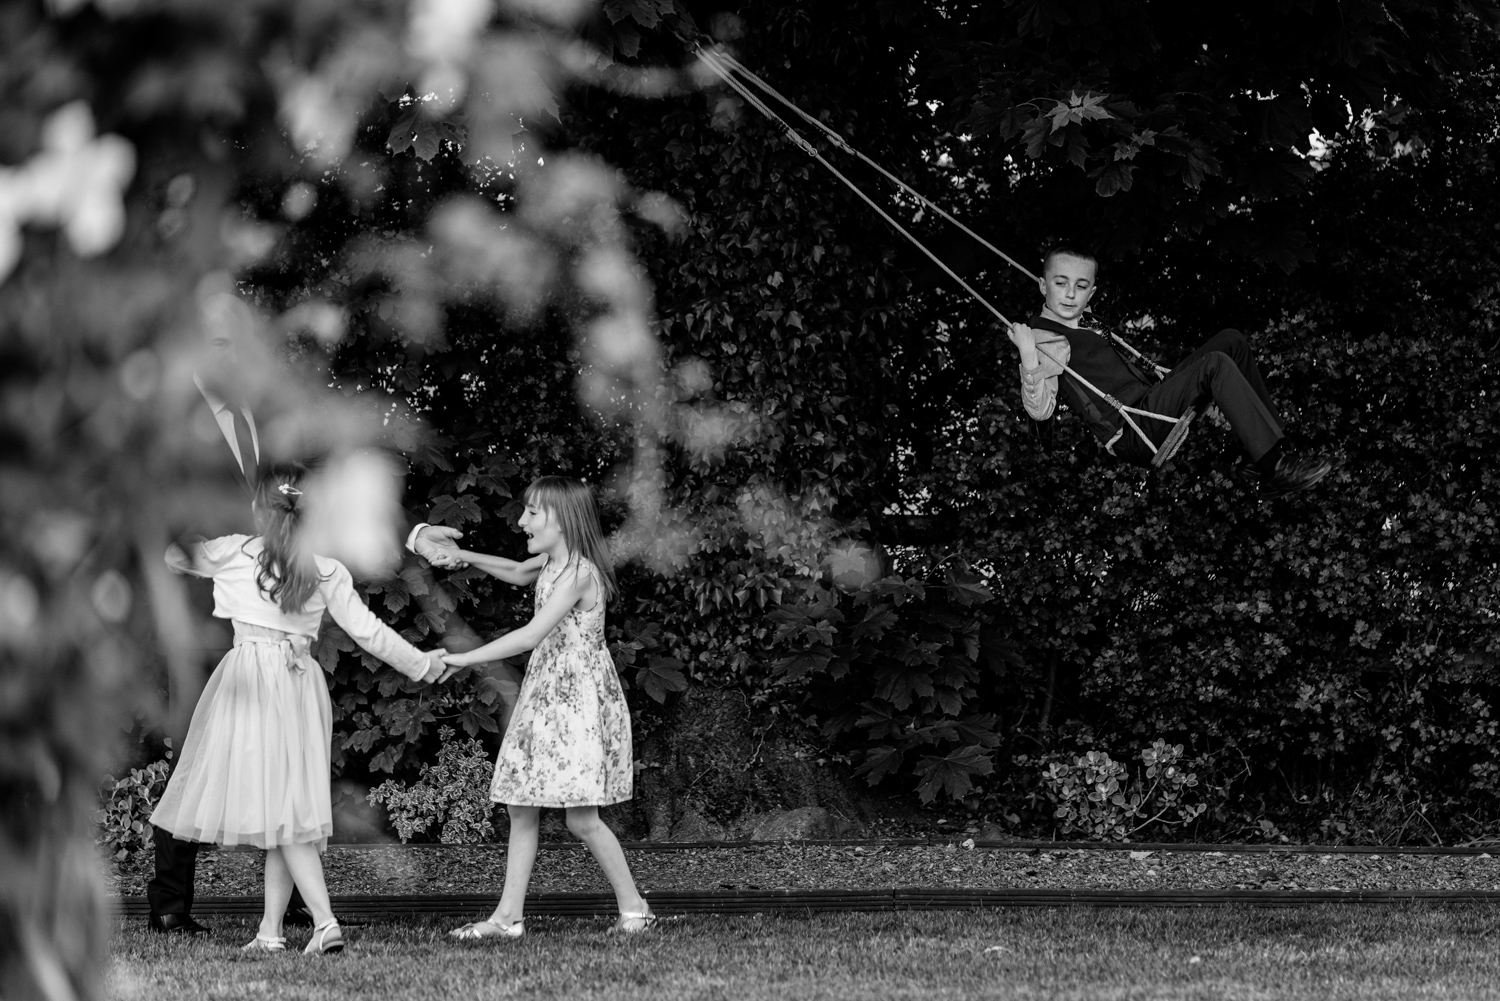 Children playing and boy on swing